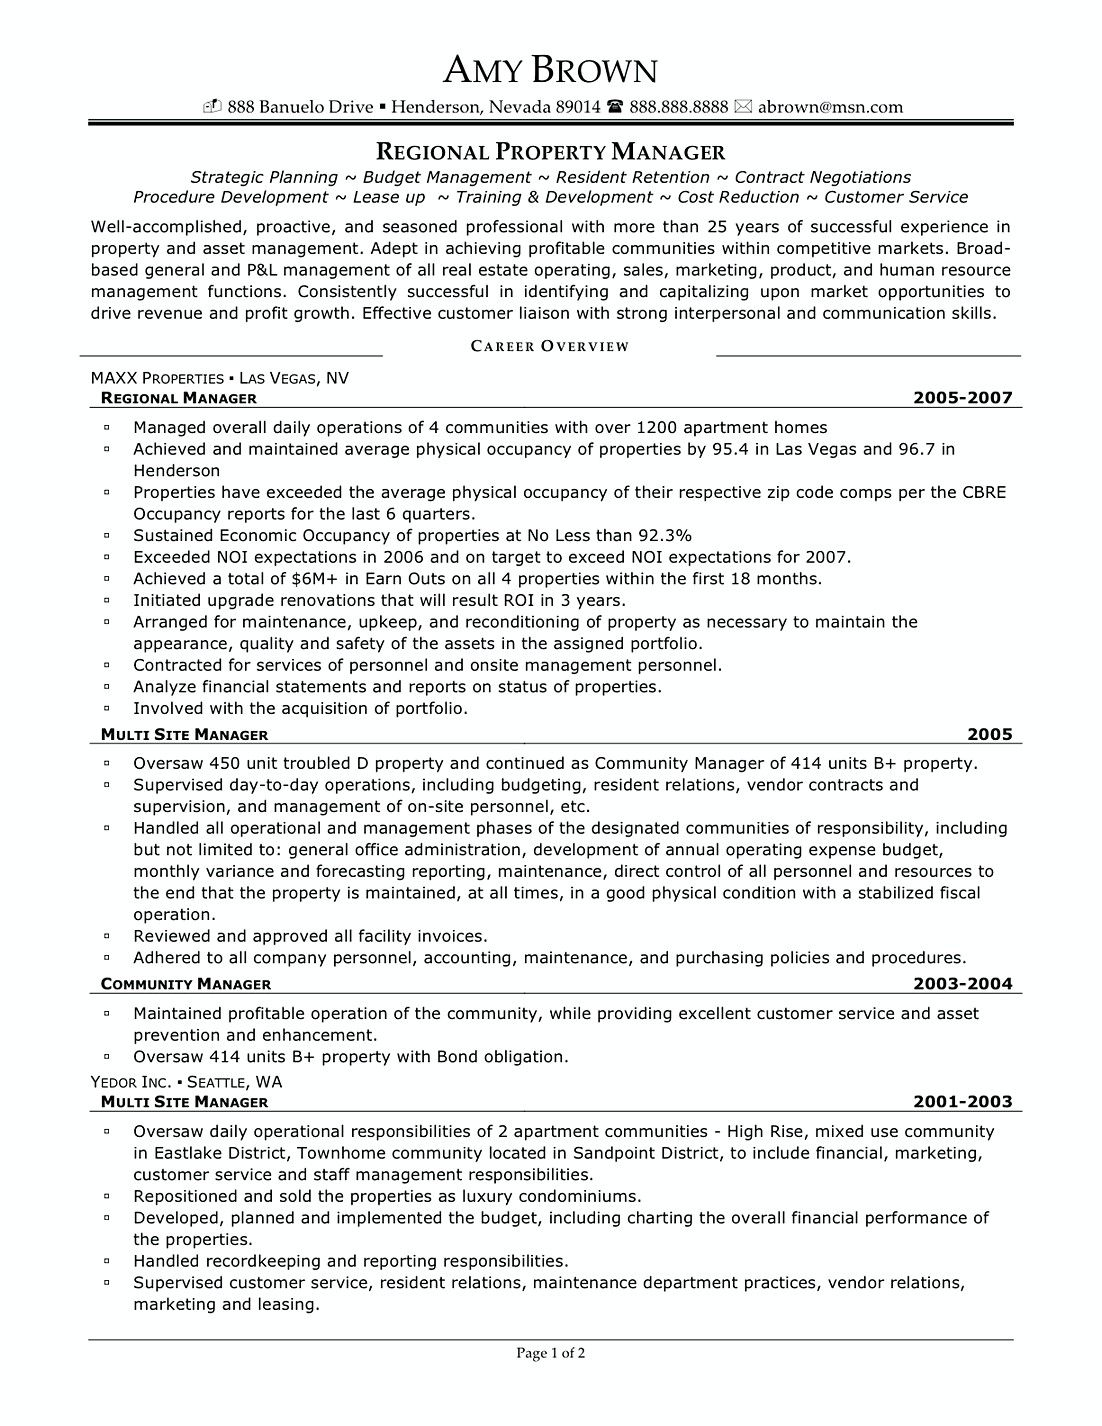 regional property manager resume samples commercial property manager resume interested in working in property property